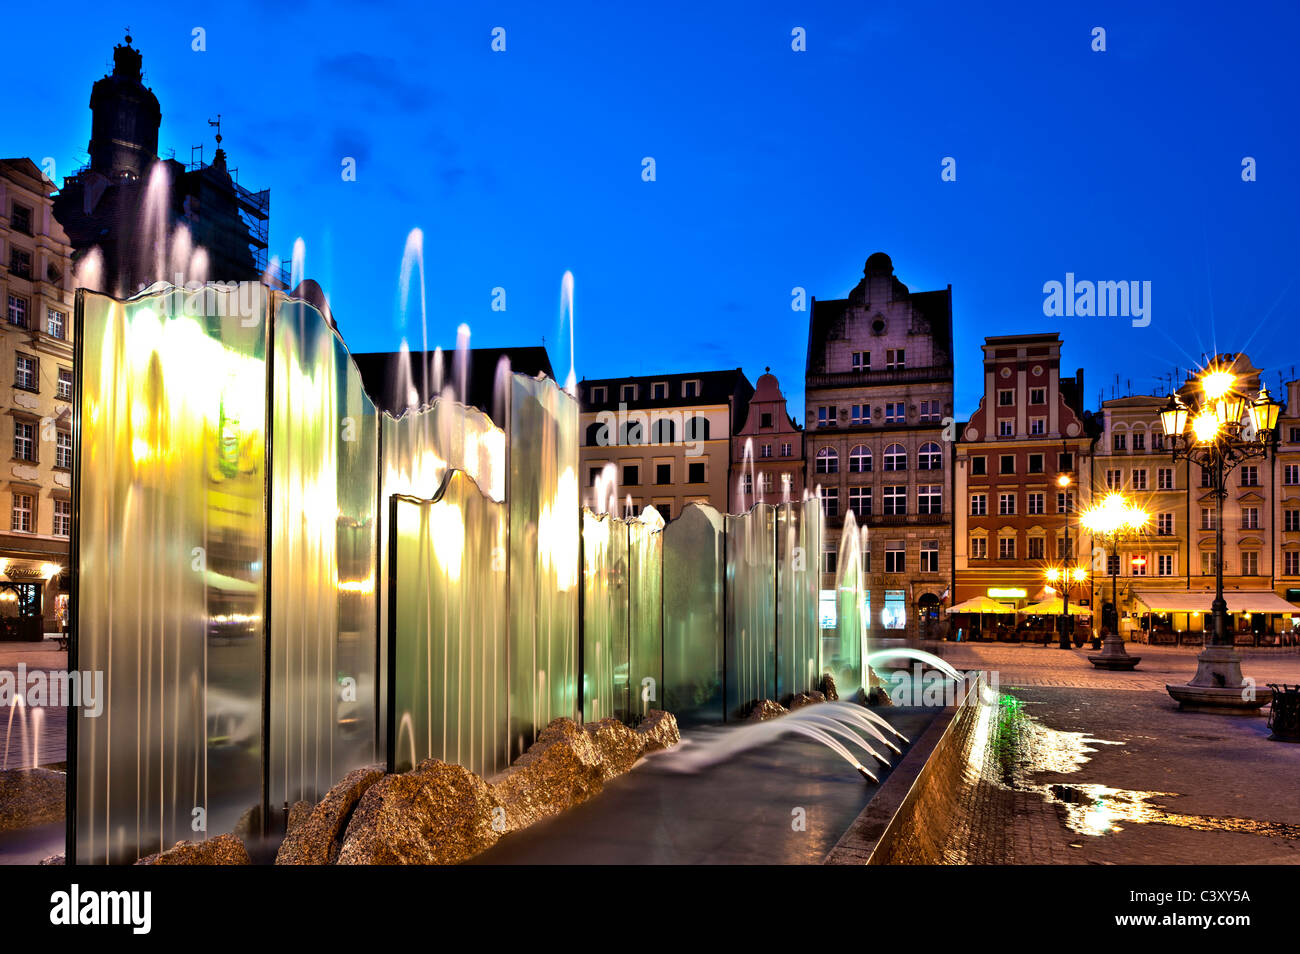 Contemporary fountain in Old Town, Wroclaw, Poland - Stock Image